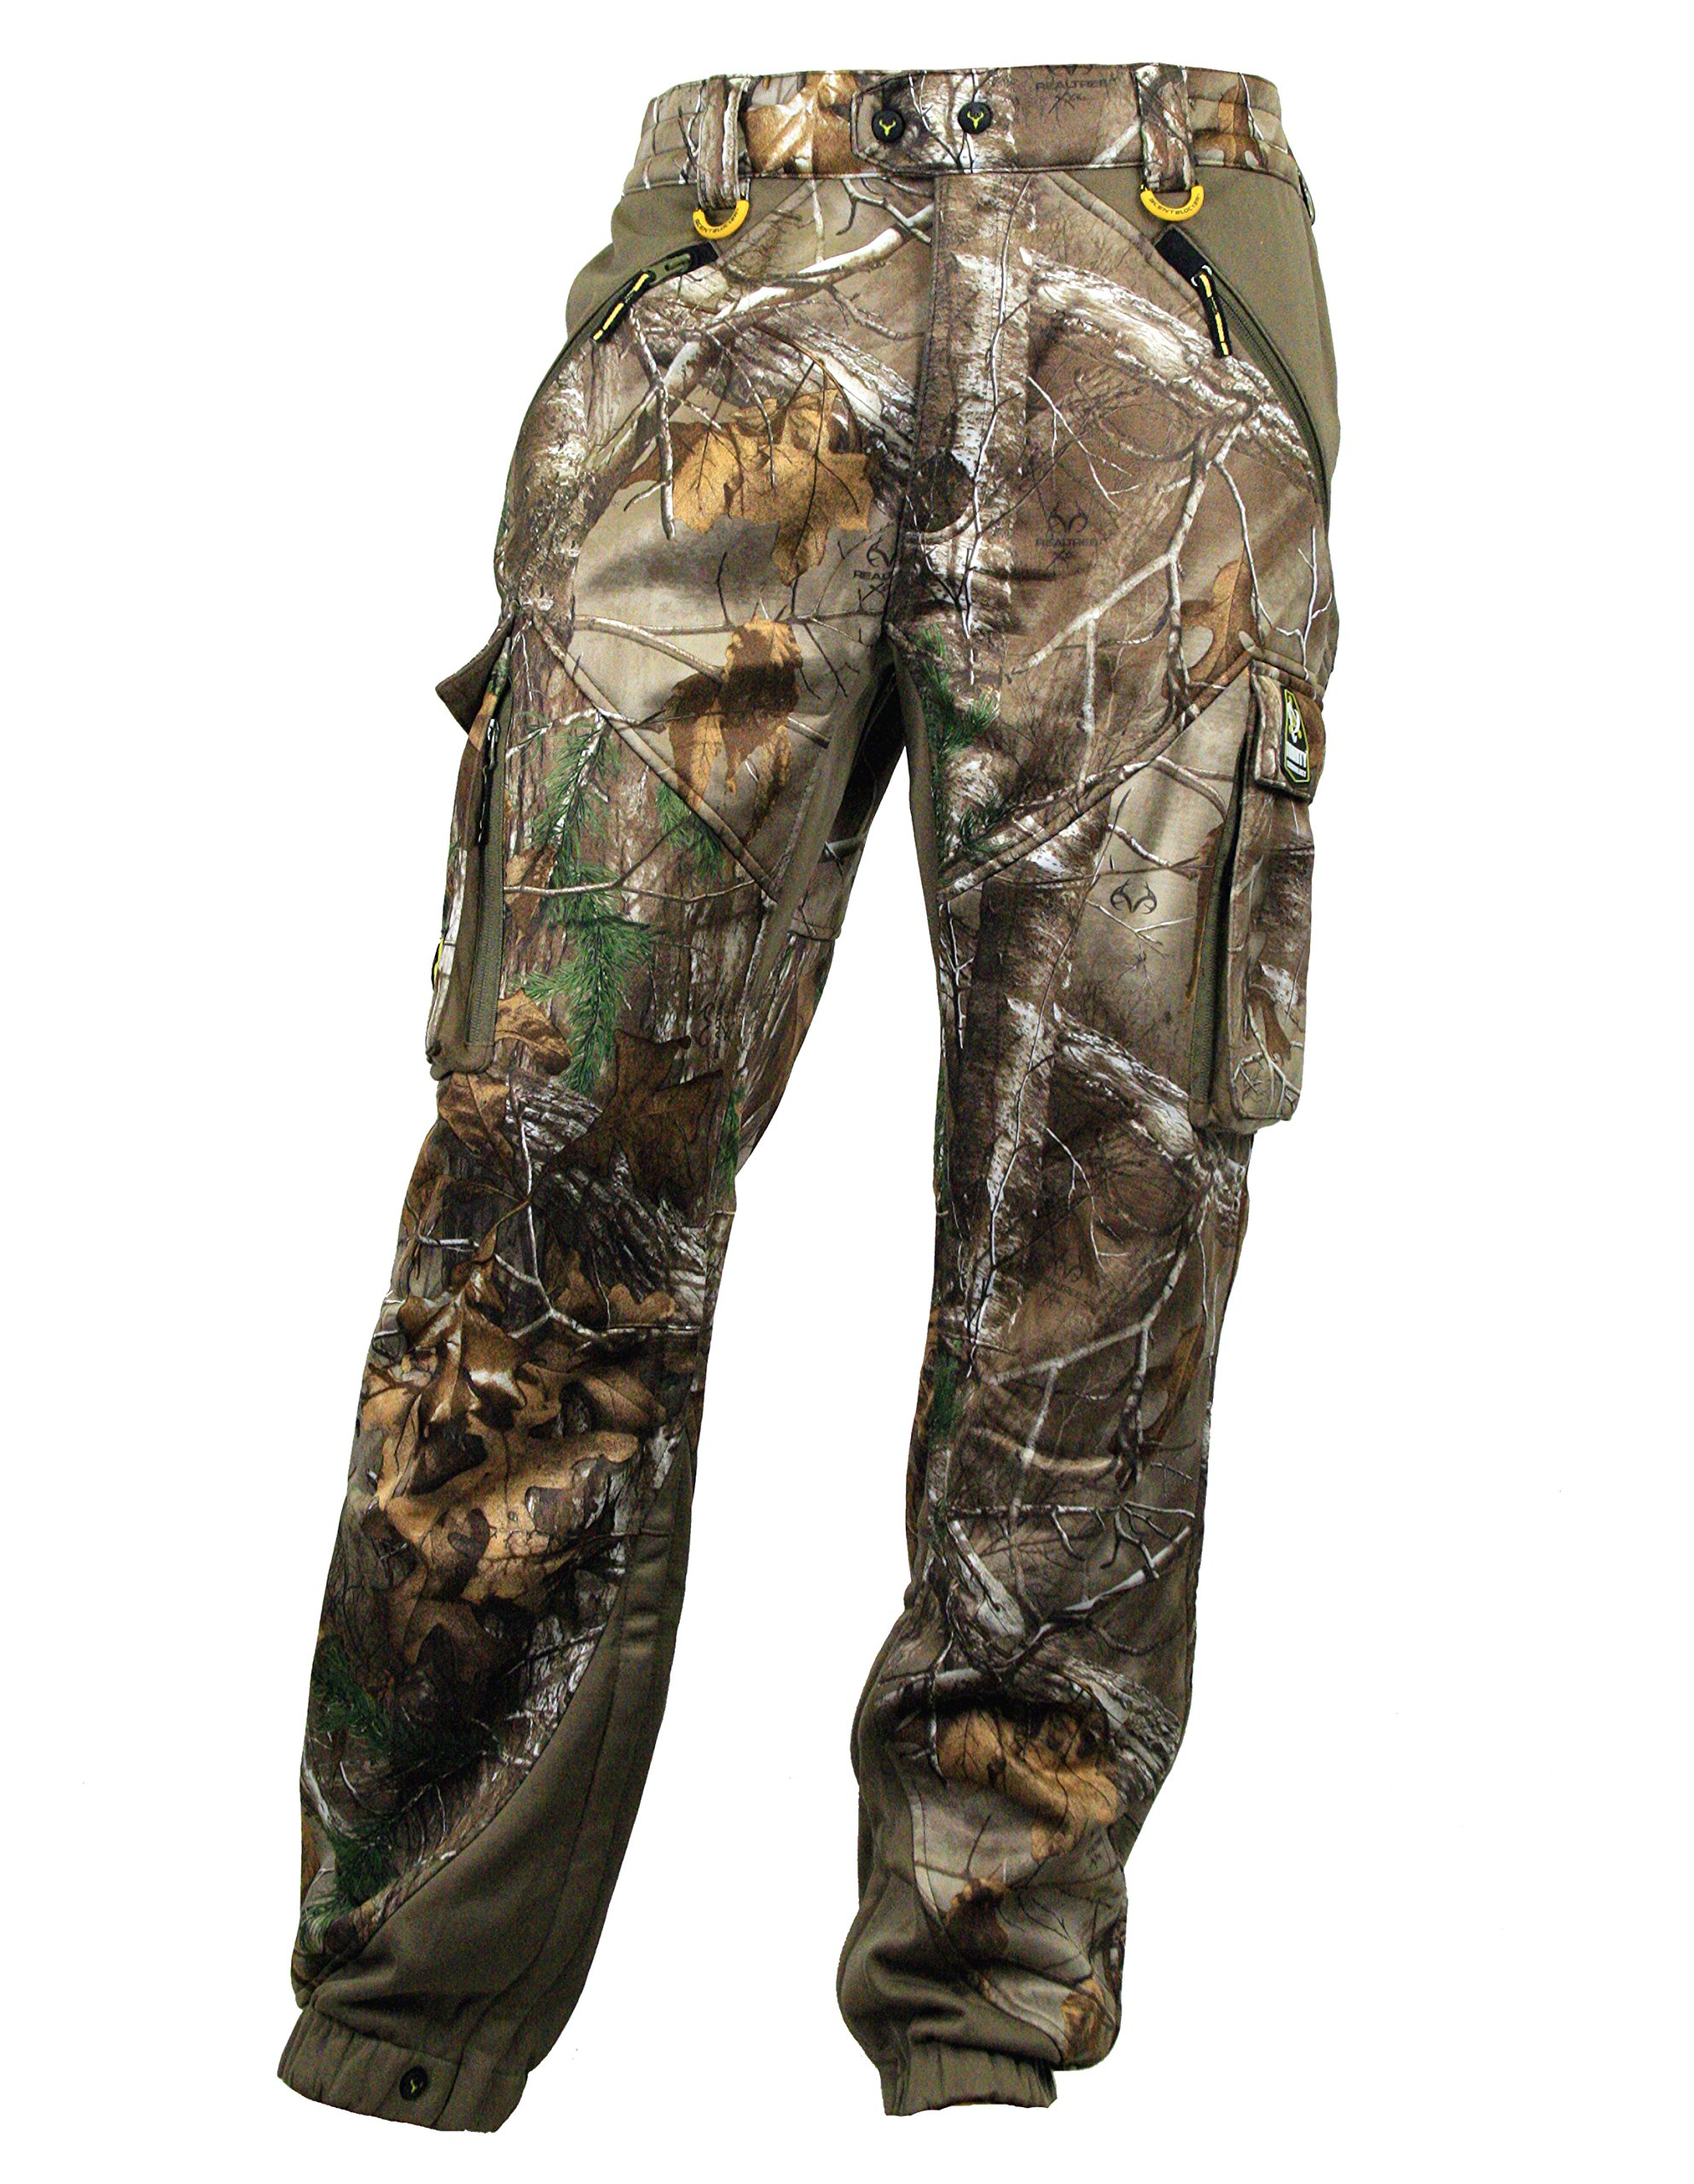 Scent Blocker Matrix Pants with Windbrake, Camo, 2X-Large